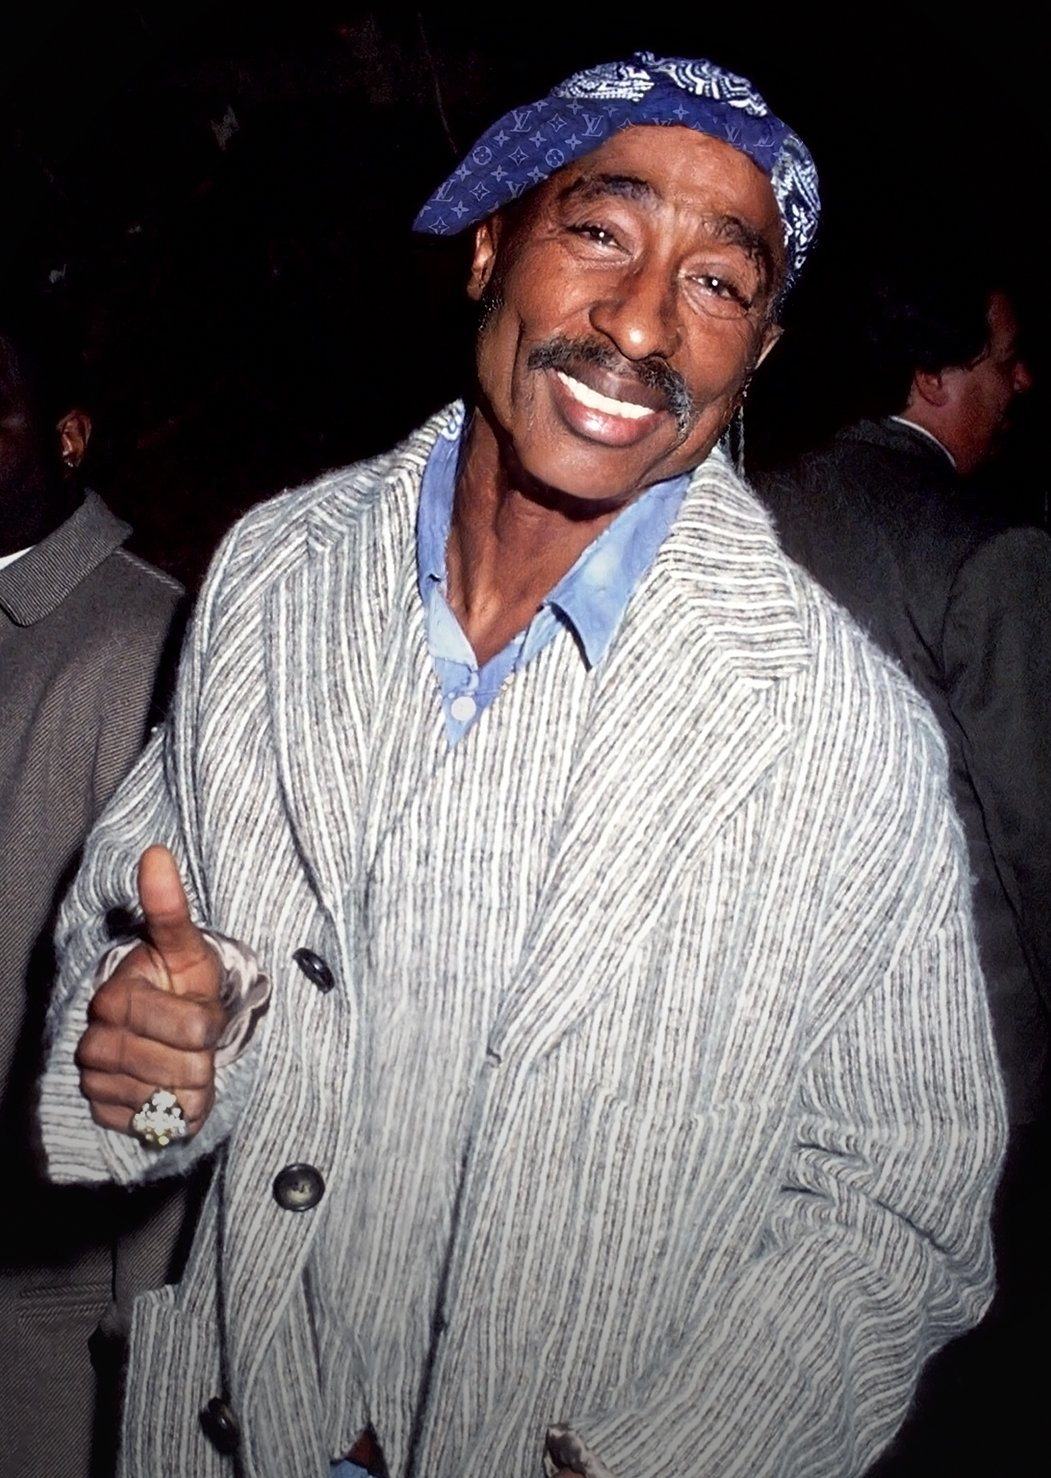 Le vieux Tupac Shakur | Source: Getty Images